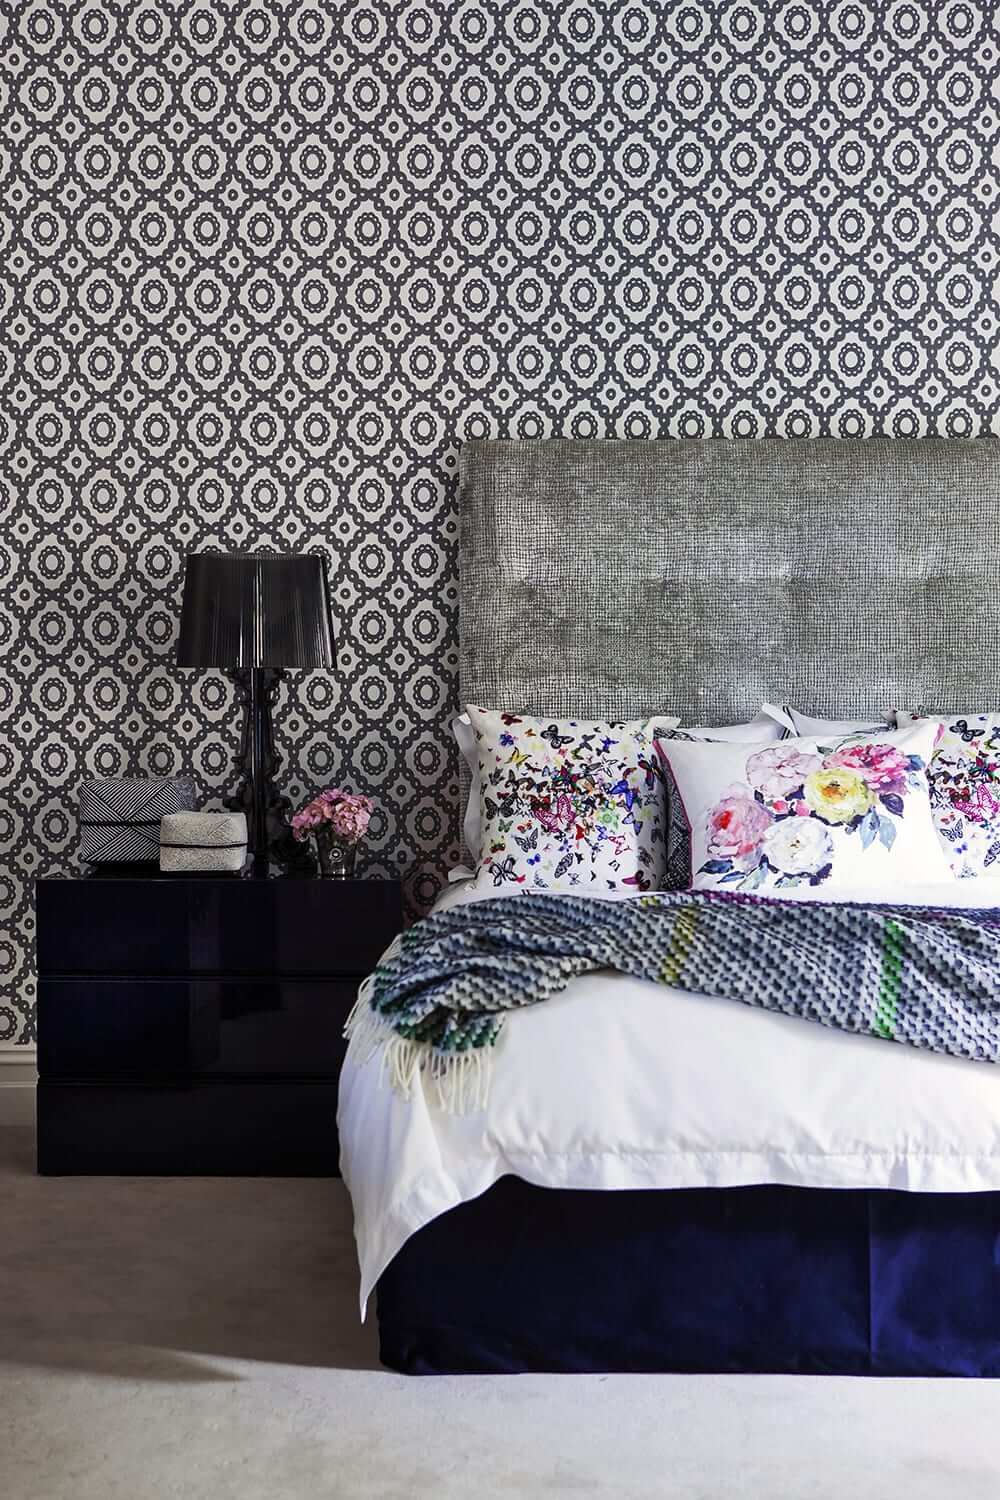 Sydney Interior designer Centennial Park project bedroom redesign